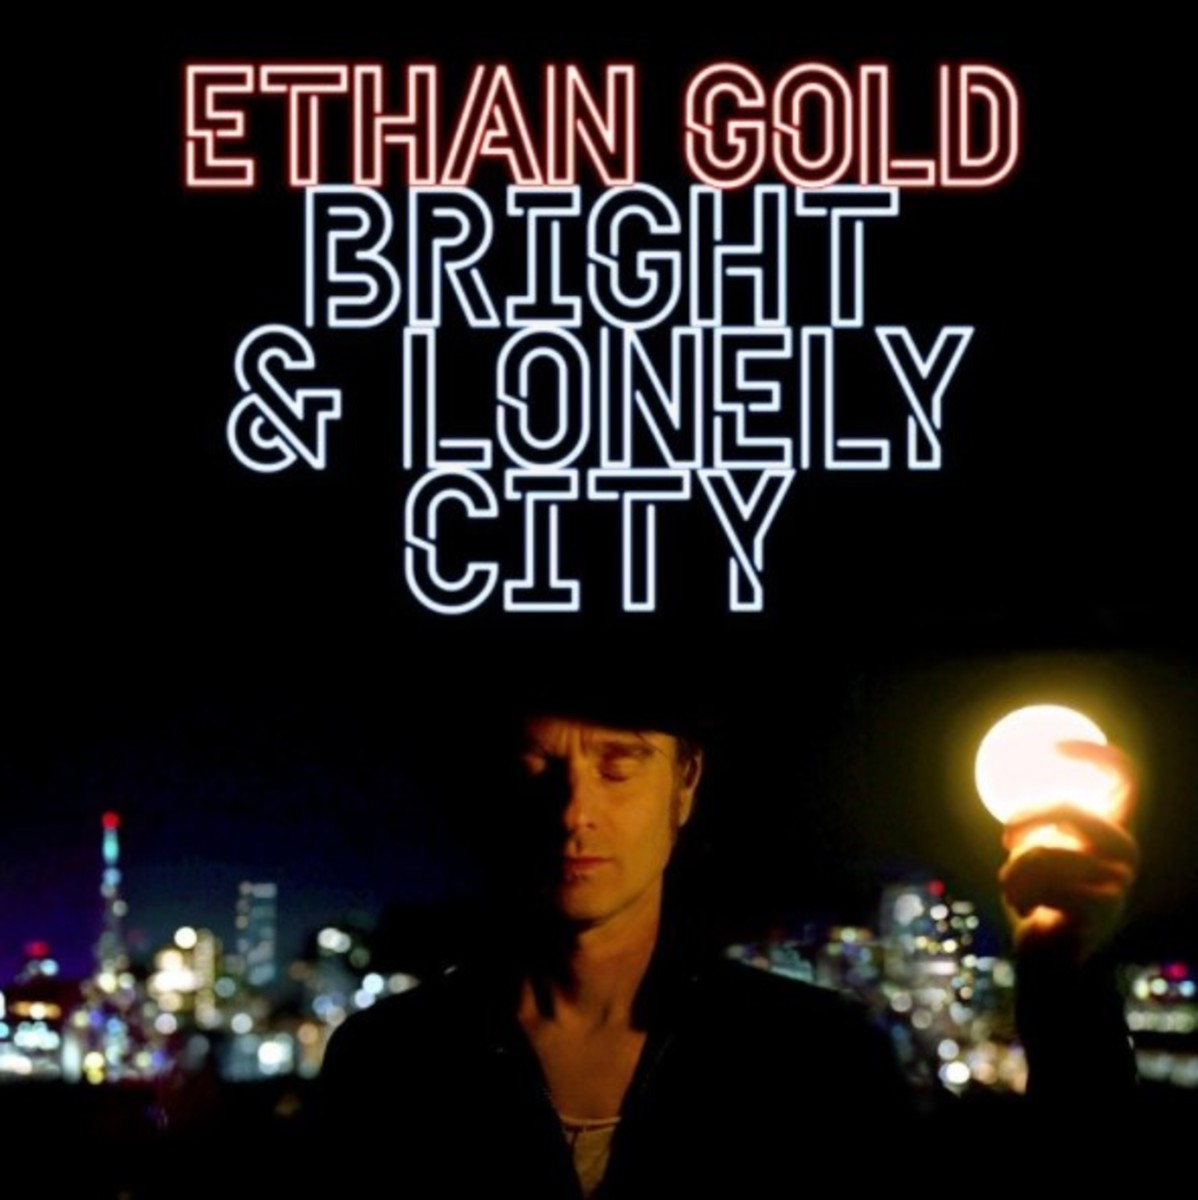 Ethan Gold Bright